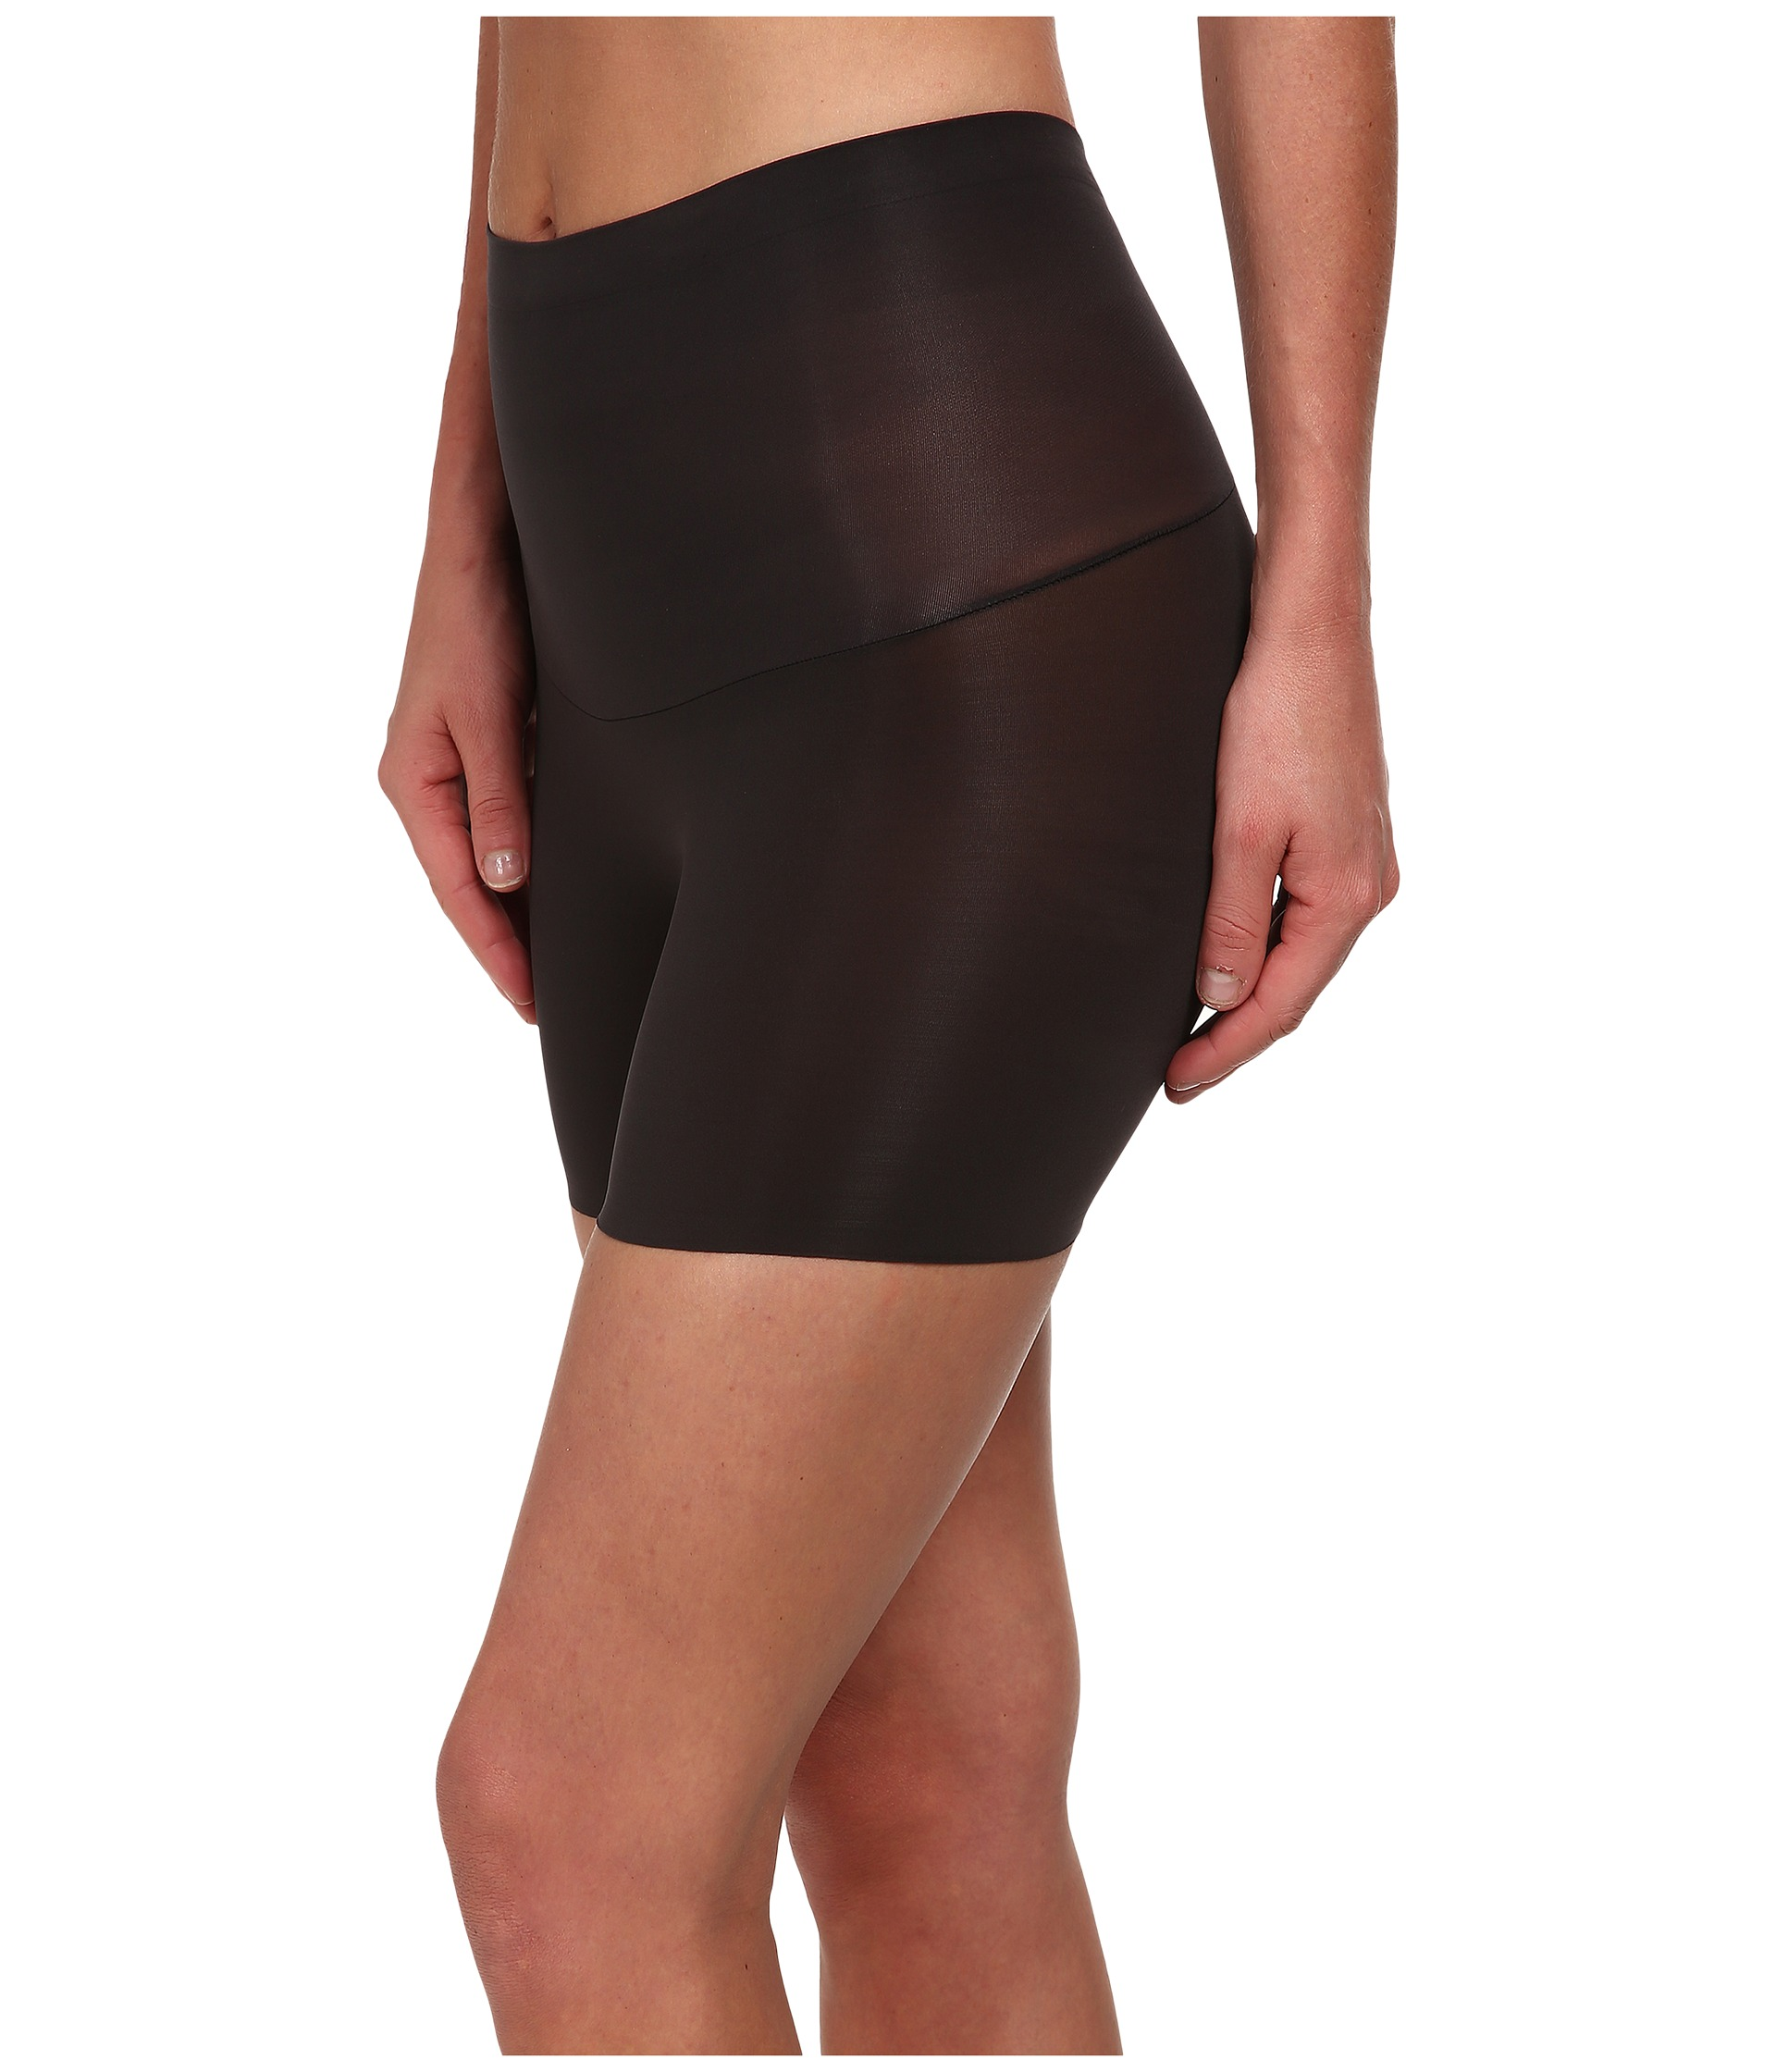 Spanx Shape My Day Girlshorts at Zappos.com